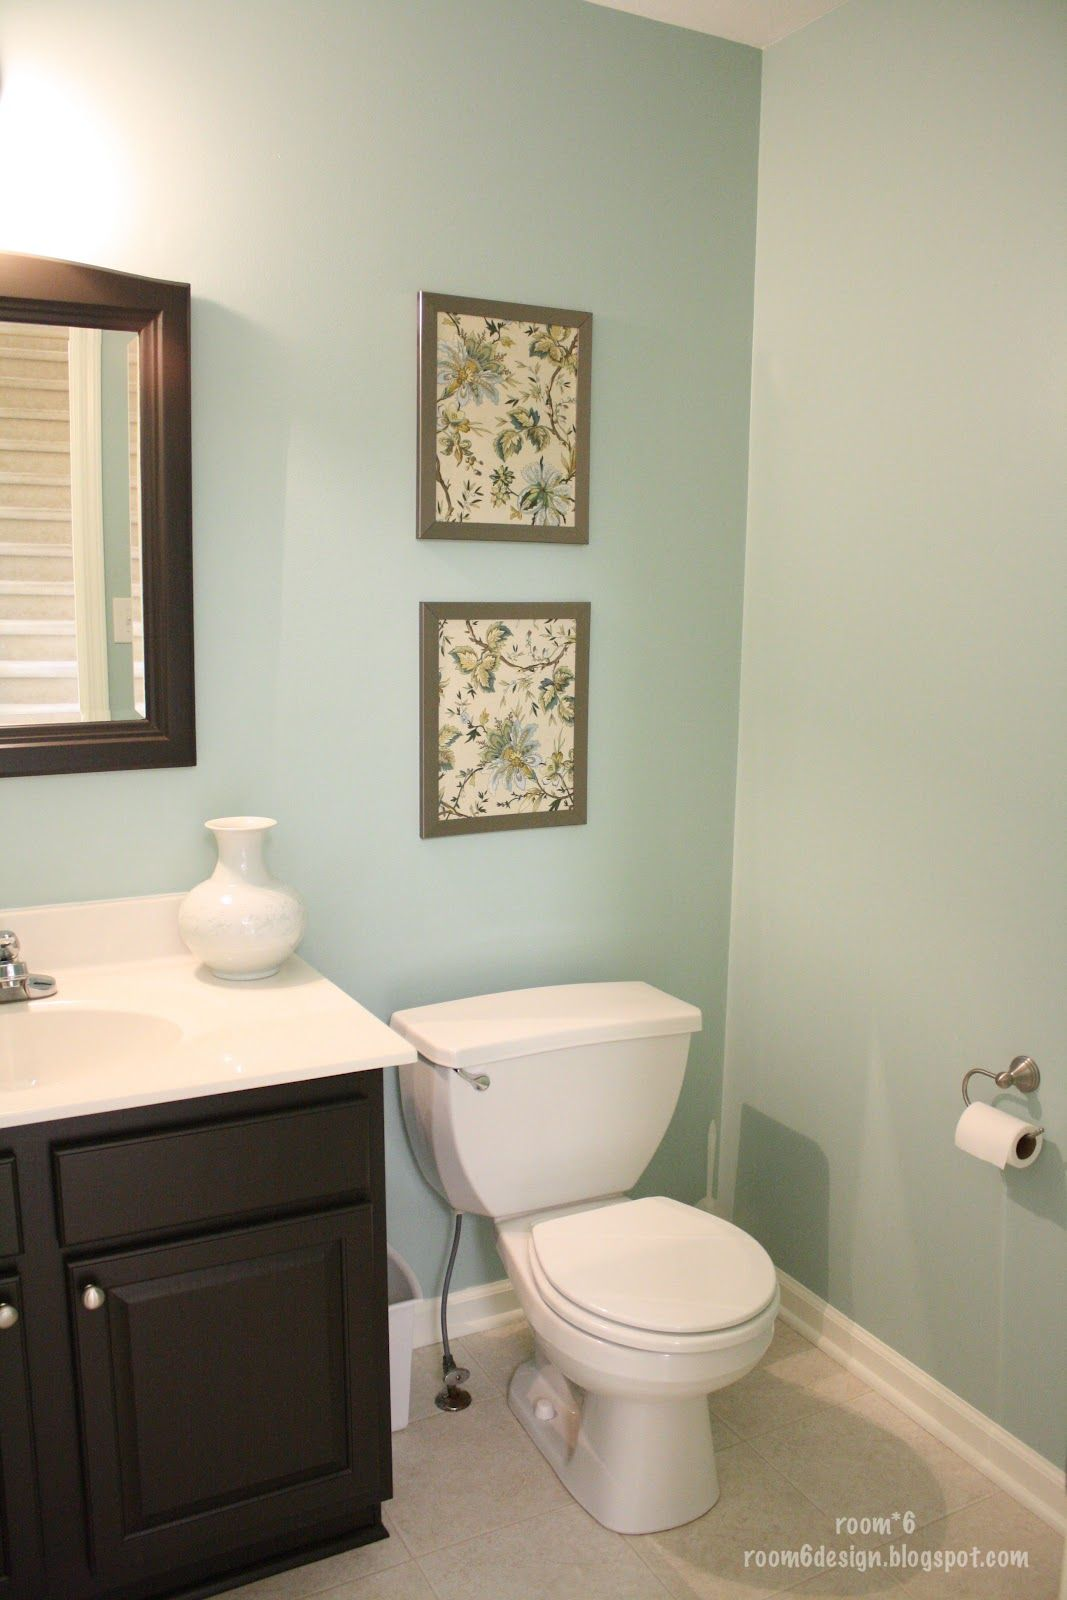 Bathroom Color Valspar Glass Tile Home Decor Pinterest - Valspar bathroom paint